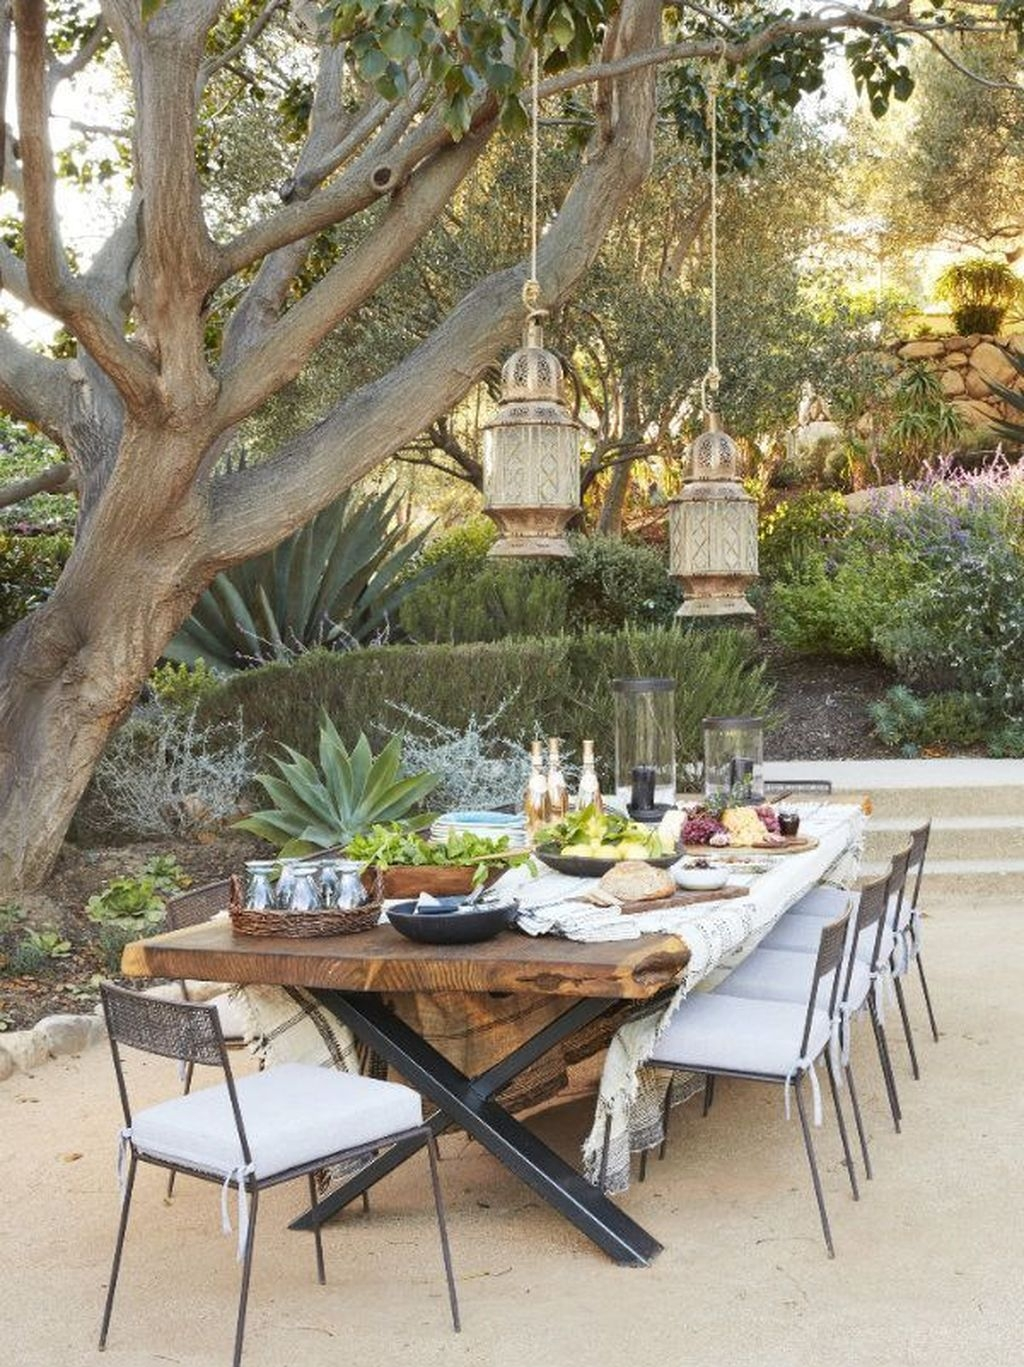 5 Ideas For the Perfect Al Fresco Dining Area